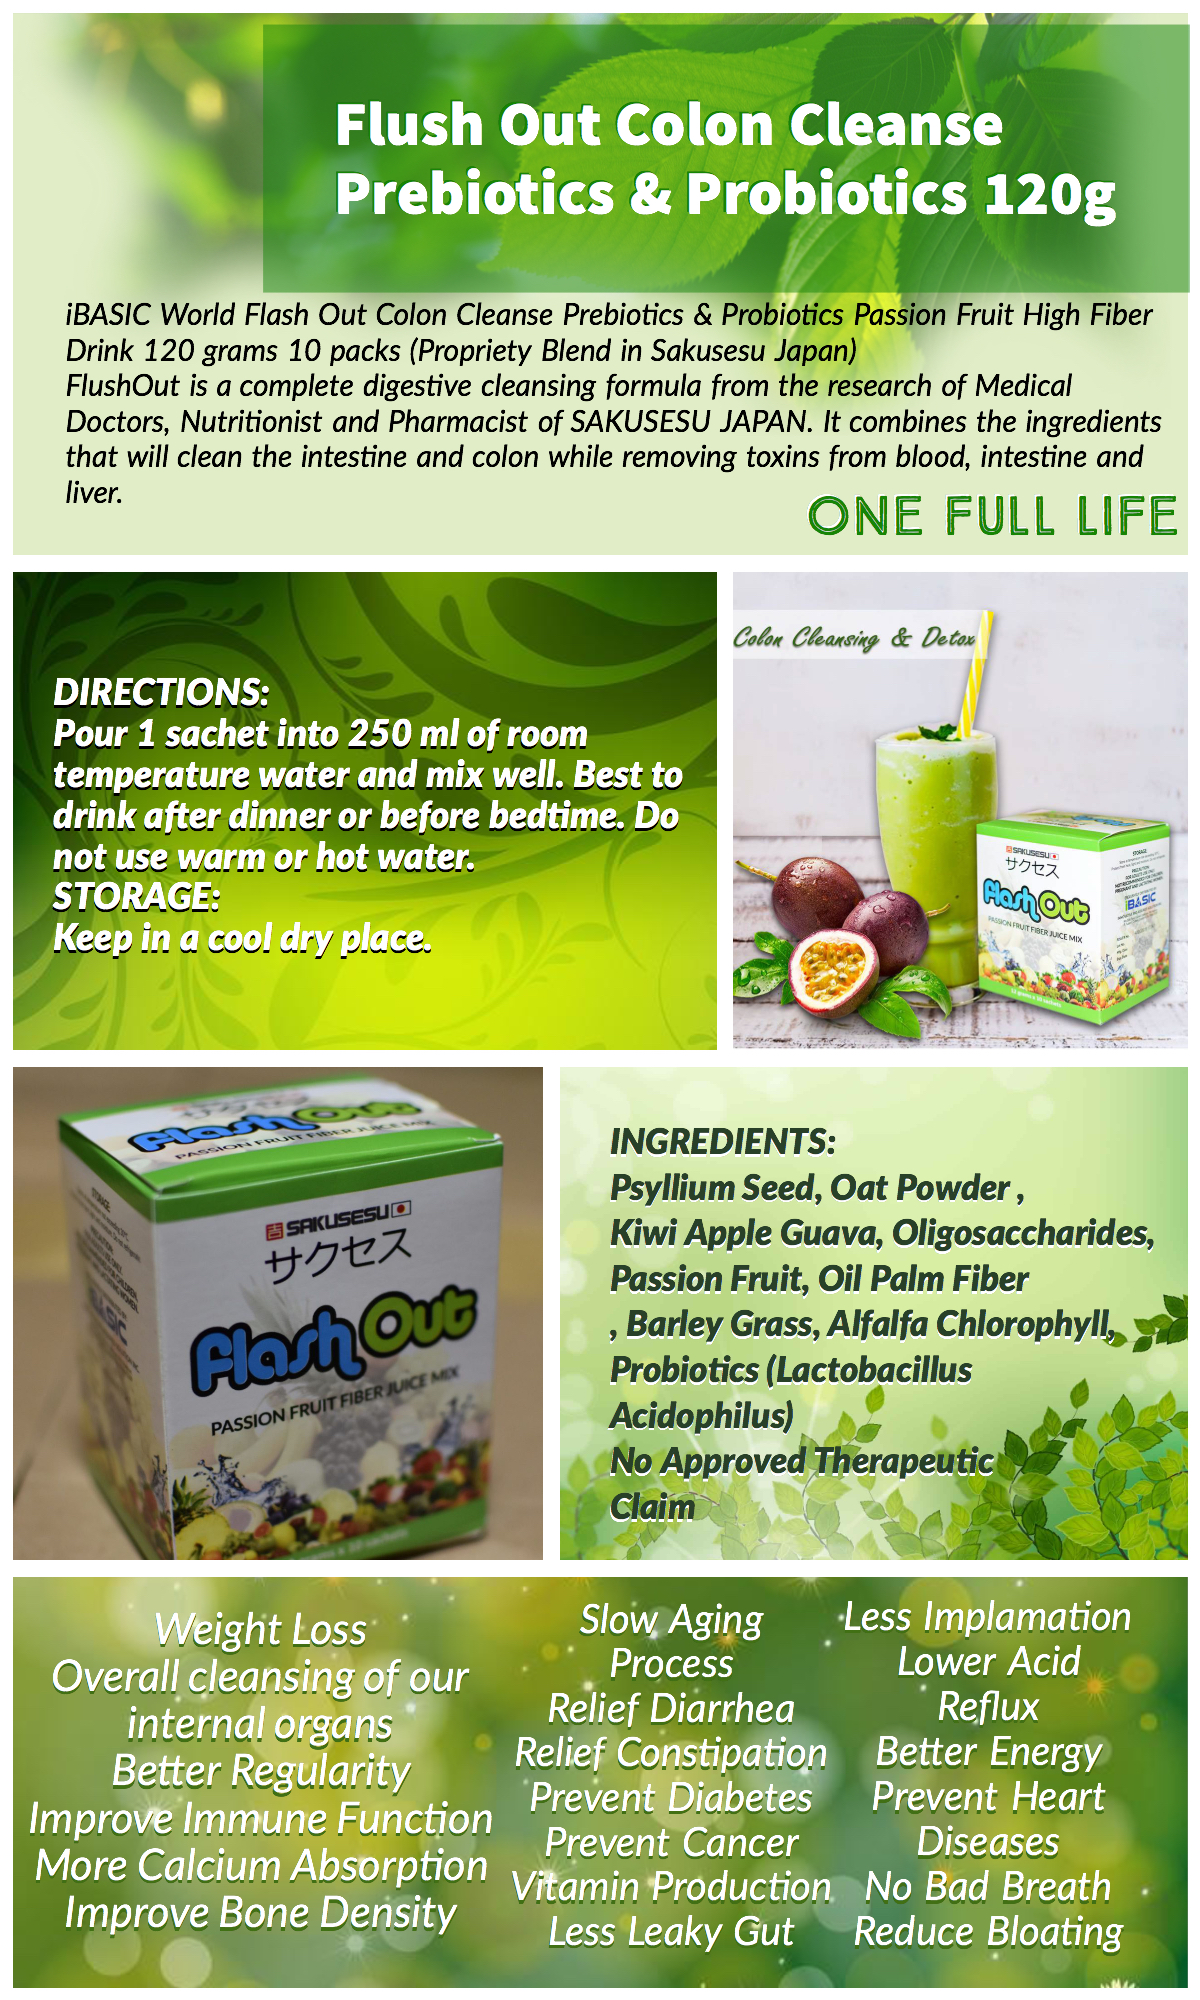 Flush Out / Flash Out Colon Cleanse Prebiotics & Probiotics